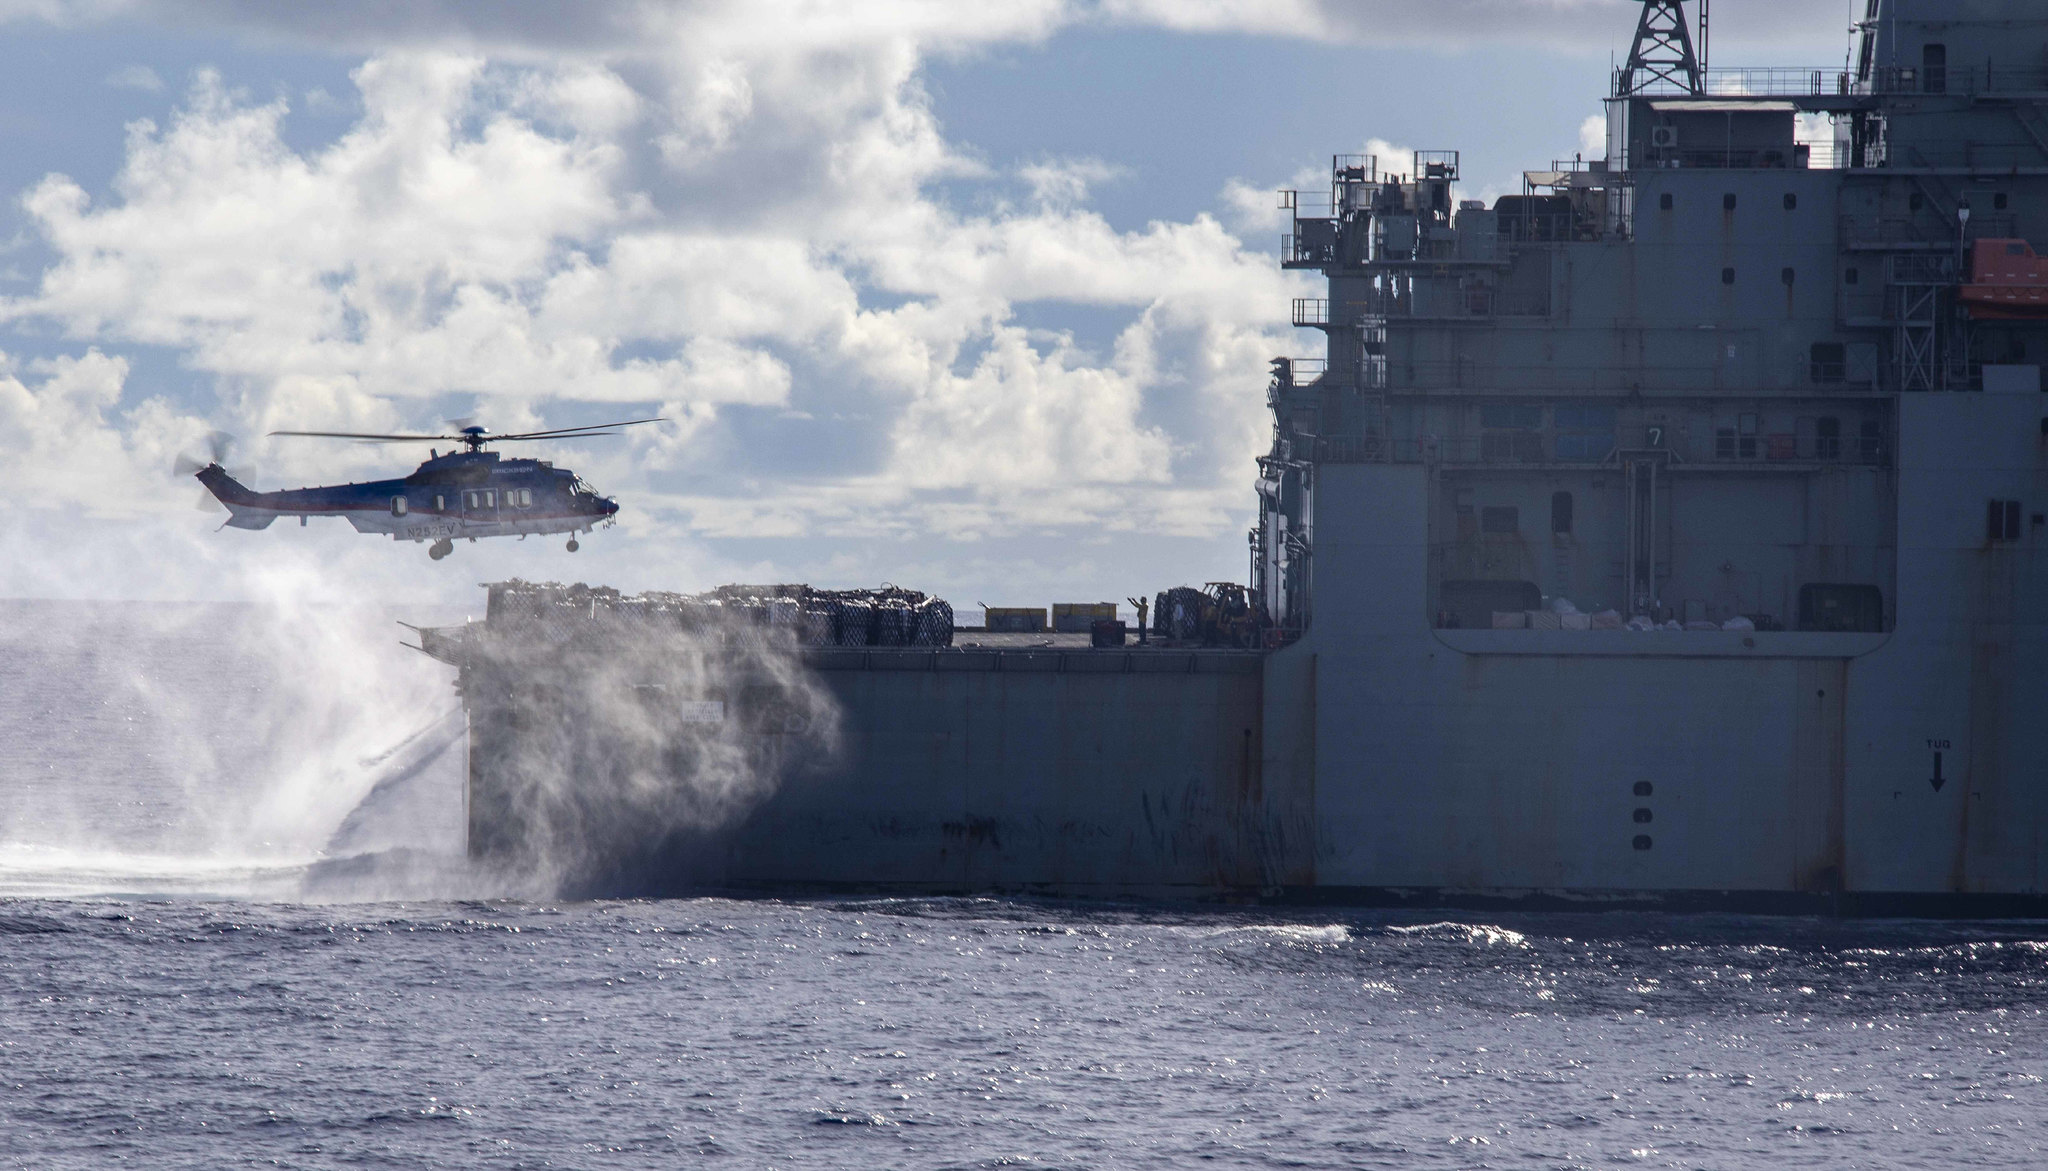 A U.S. Airbus H225 Super Puma helicopter conducts a replenishment-at-sea April 14, 2021, with the dry cargo and ammunition ship USNS Alan Shepard (T-AKE 3) and the amphibious assault ship USS Makin Island (LHD 8) in the Pacific Ocean. (Mass Communication Specialist Seaman Nadia Lund/Navy)